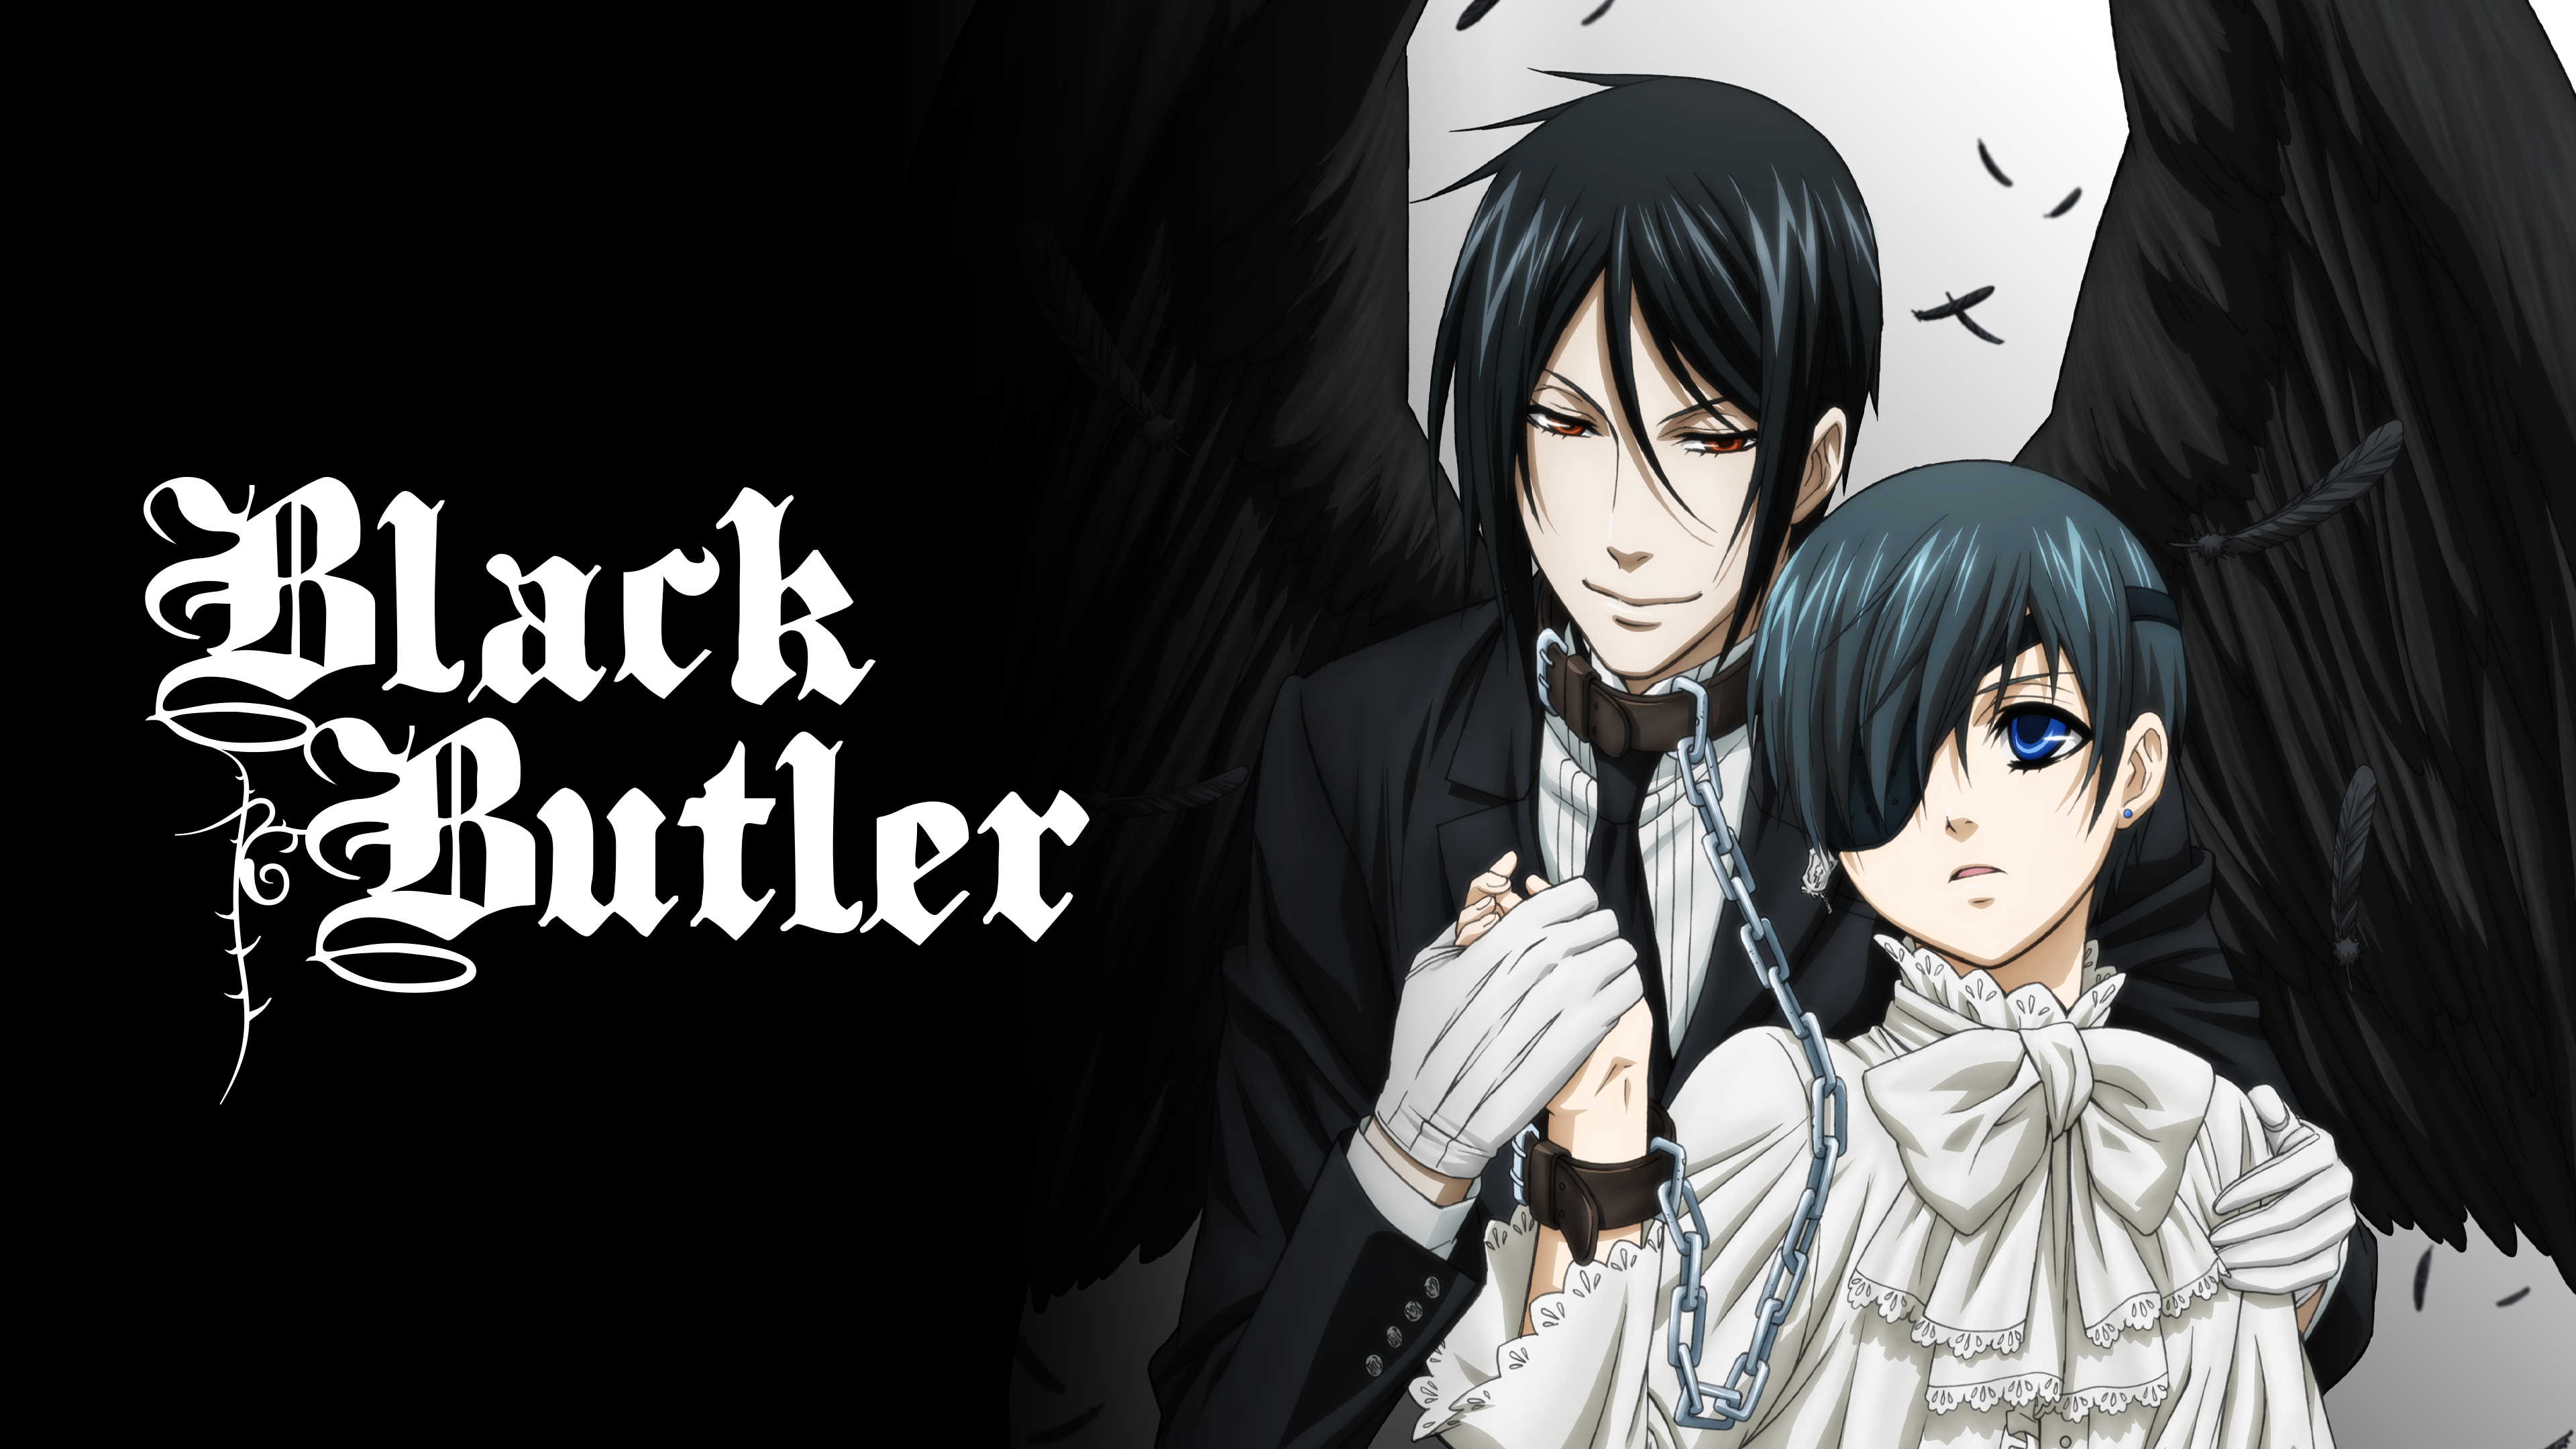 Watch Black Butler Sub & Dub | Drama, Psychological Anime | Funimation